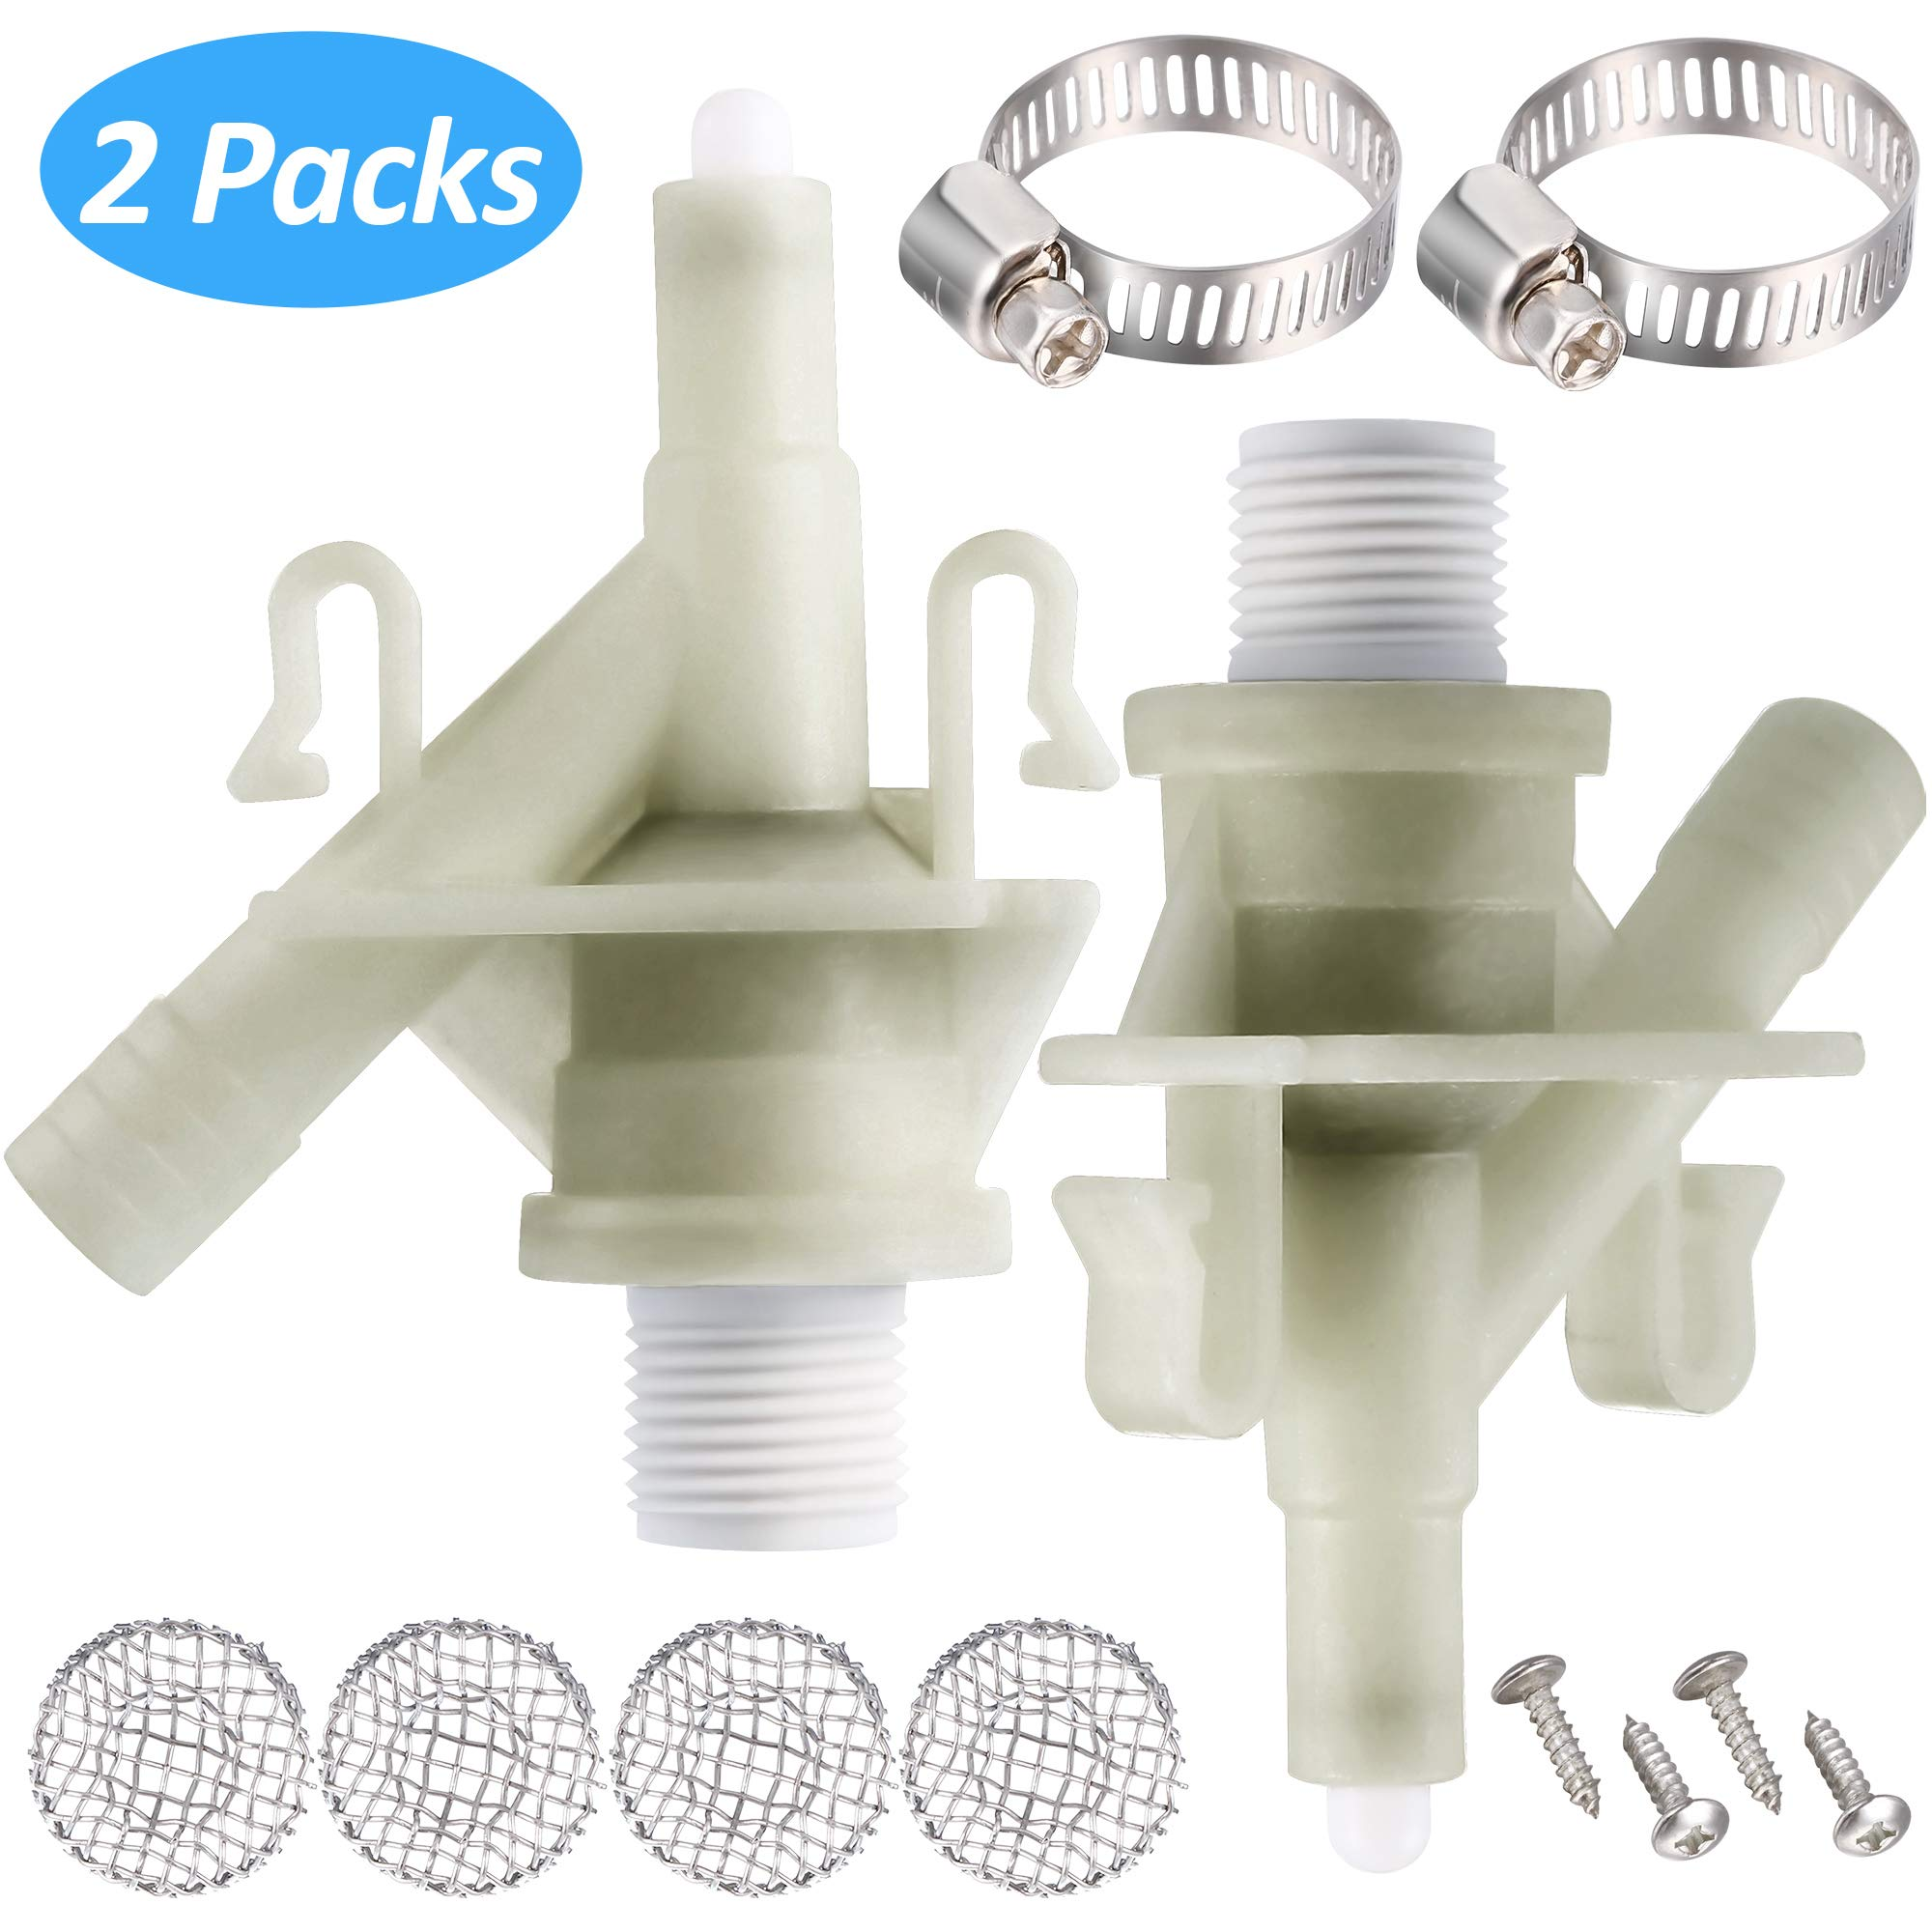 Plastic Water Valve Kit 385311641 for 300 310 320 Series Compatible with Sealand Marine Toilet Replacement and F300/F310 Toilet Water Valve Replacement (2 Pieces) by Mudder